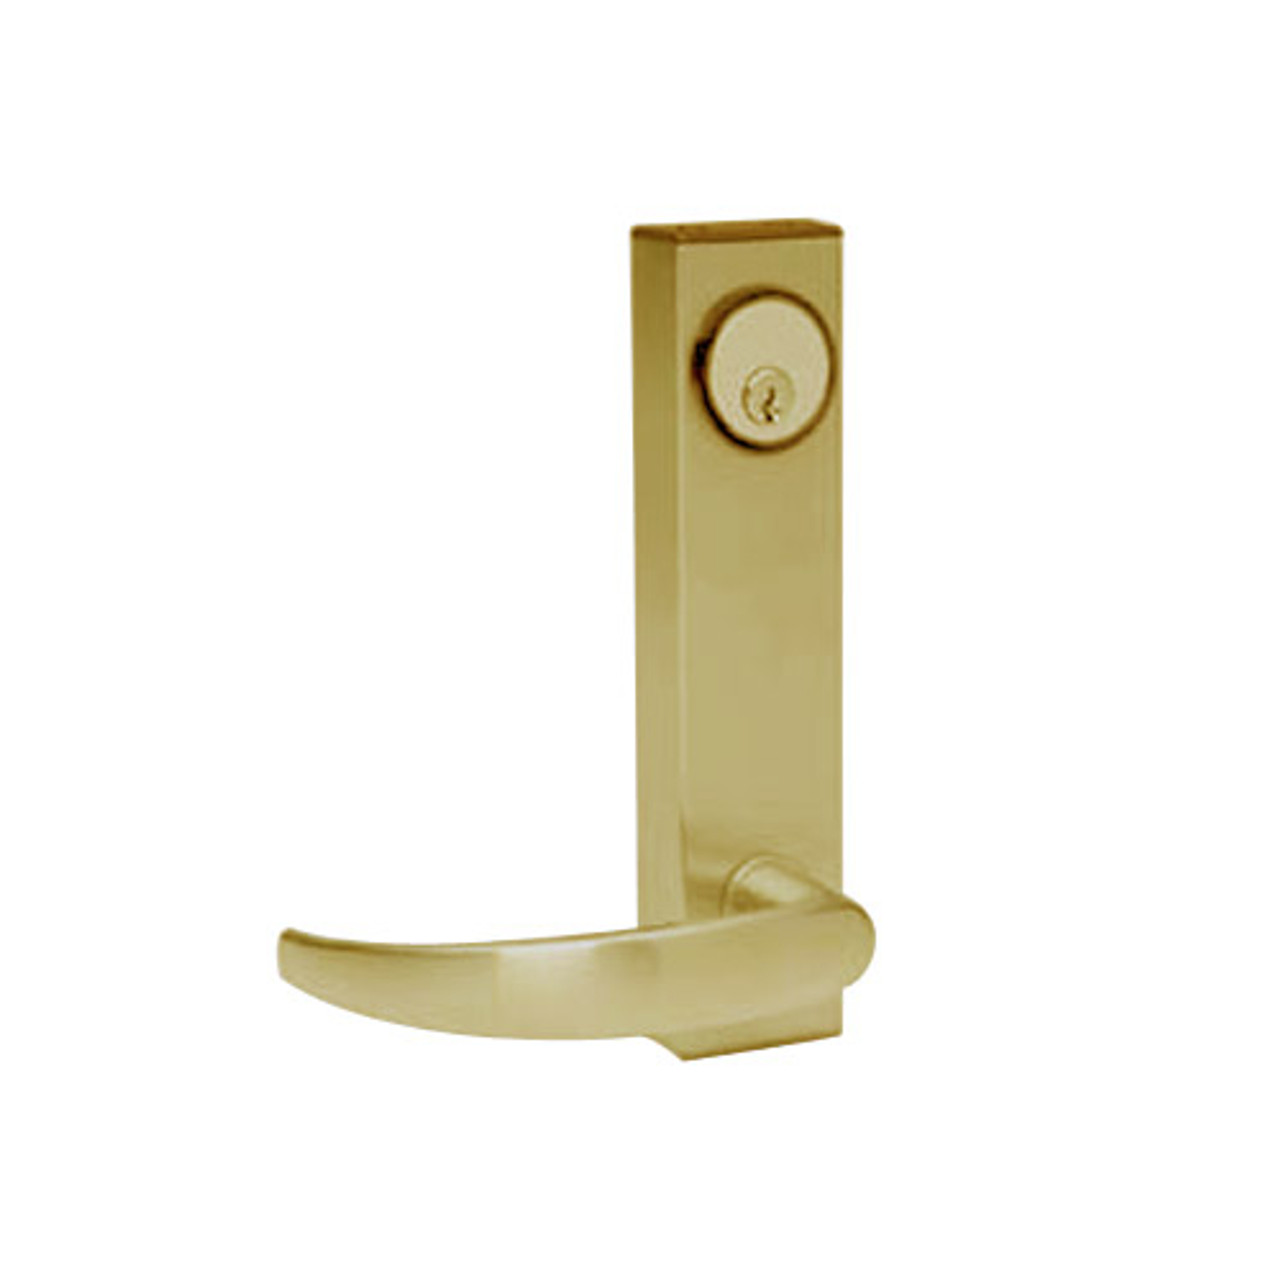 3080E-01-0-36-50 US4 Adams Rite Electrified Entry Trim with Curve Lever in Satin Brass Finish